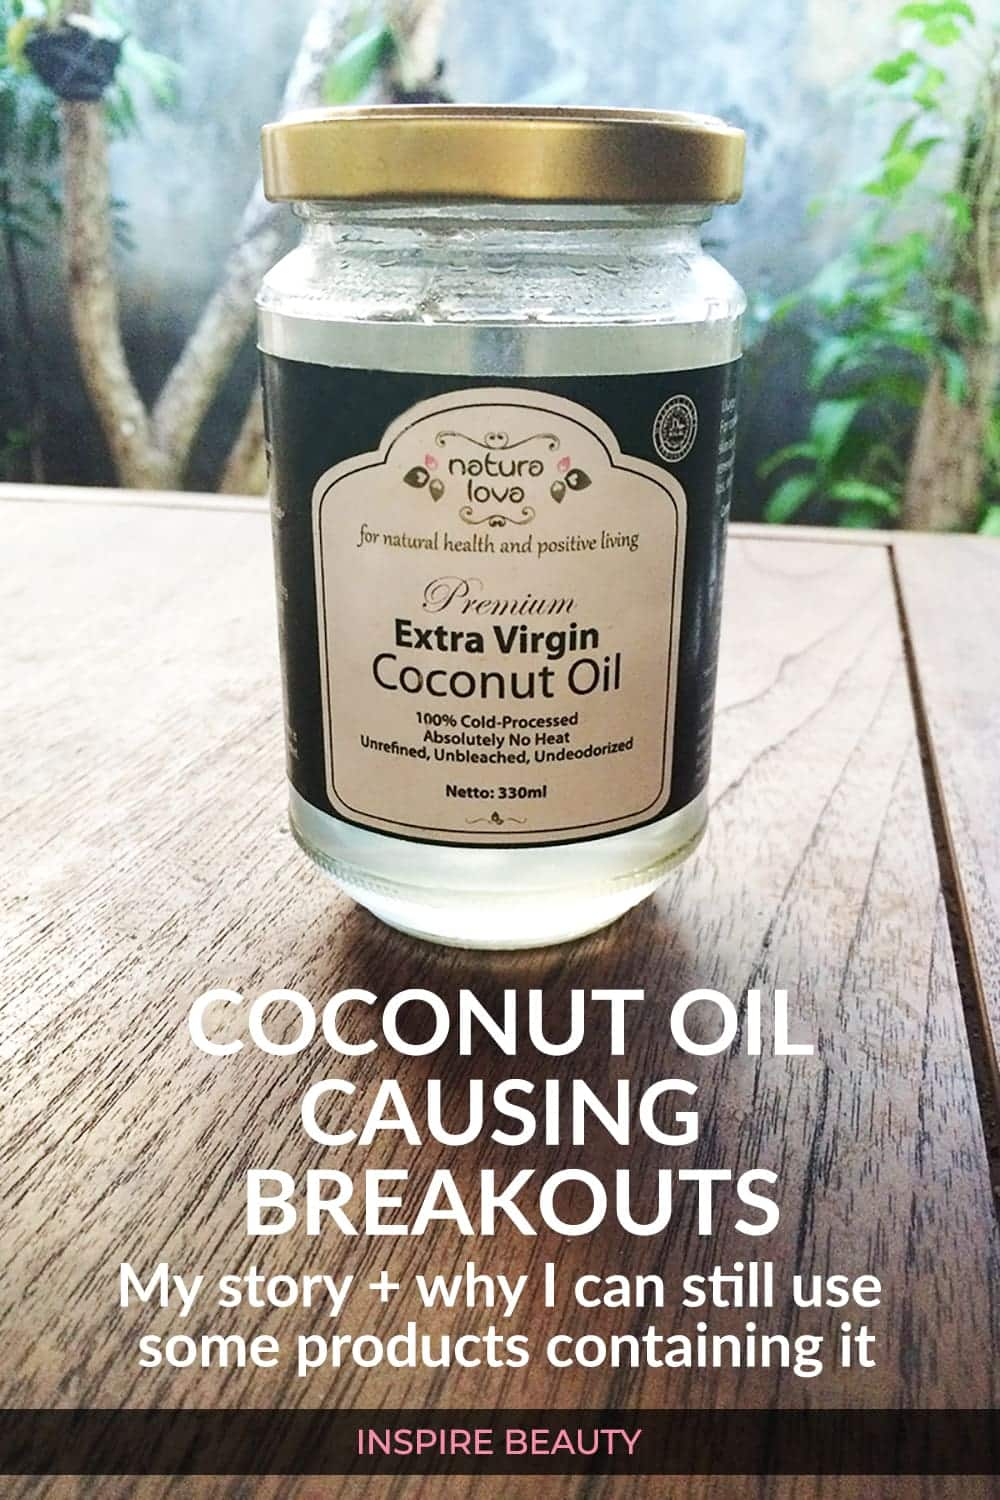 coconut oil causing clogged pores and bumpy skin texture, my story.